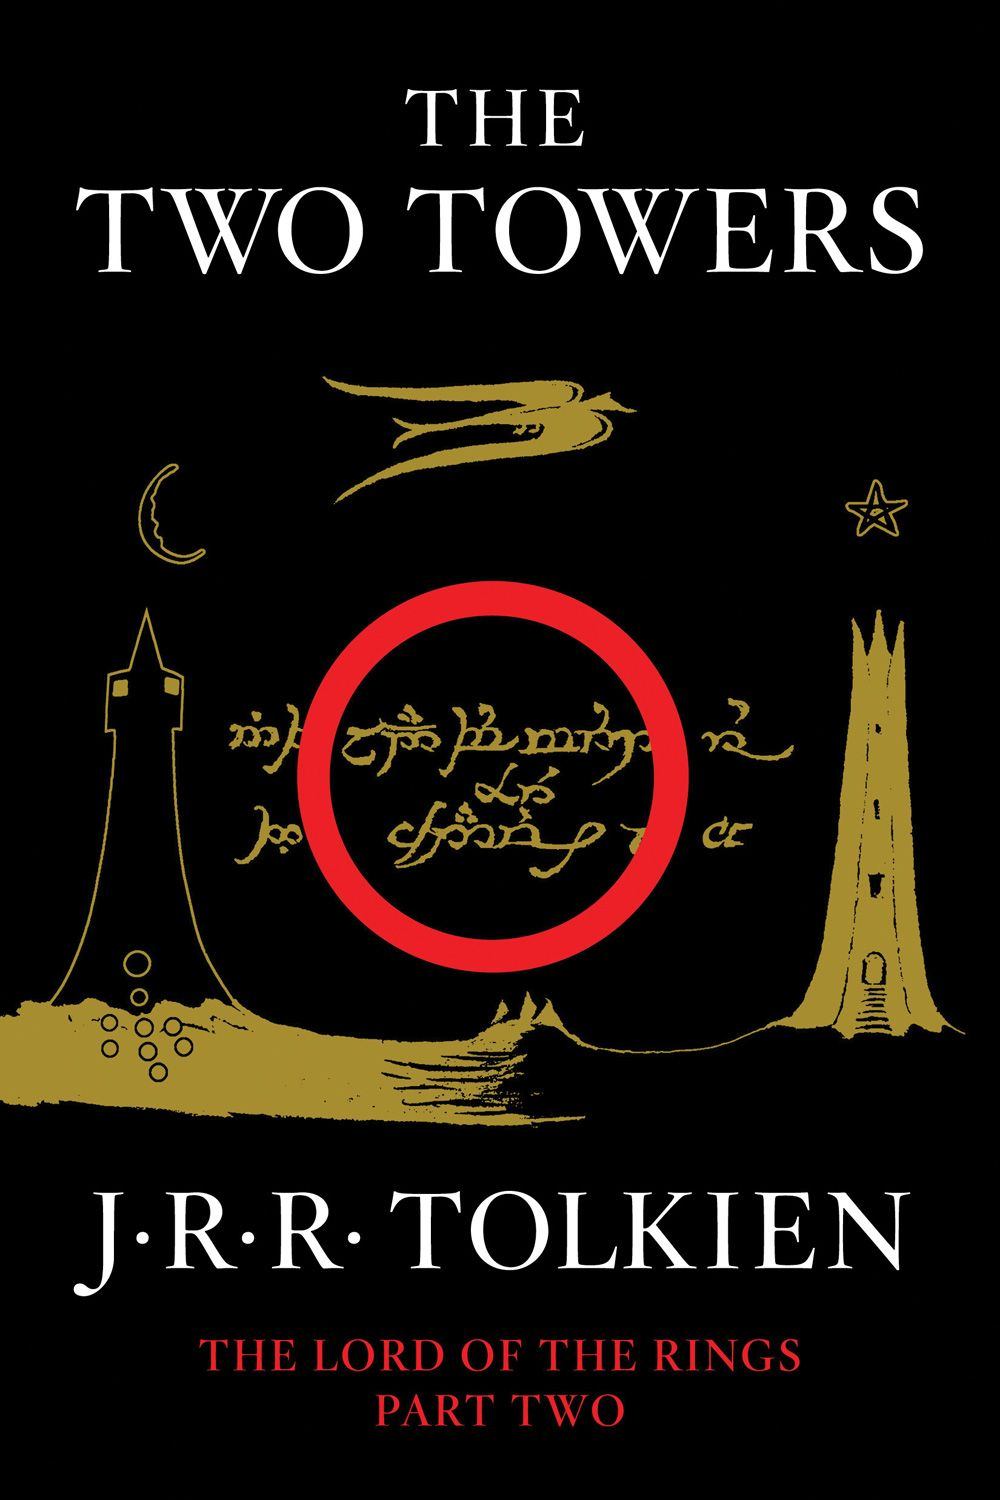 the quest of finding the ring in jrr tolkiens the two towers Specific changes between the peter jackson the two towers film compared to jrr during in the war of the ring violates tolkien's theme of the elves.